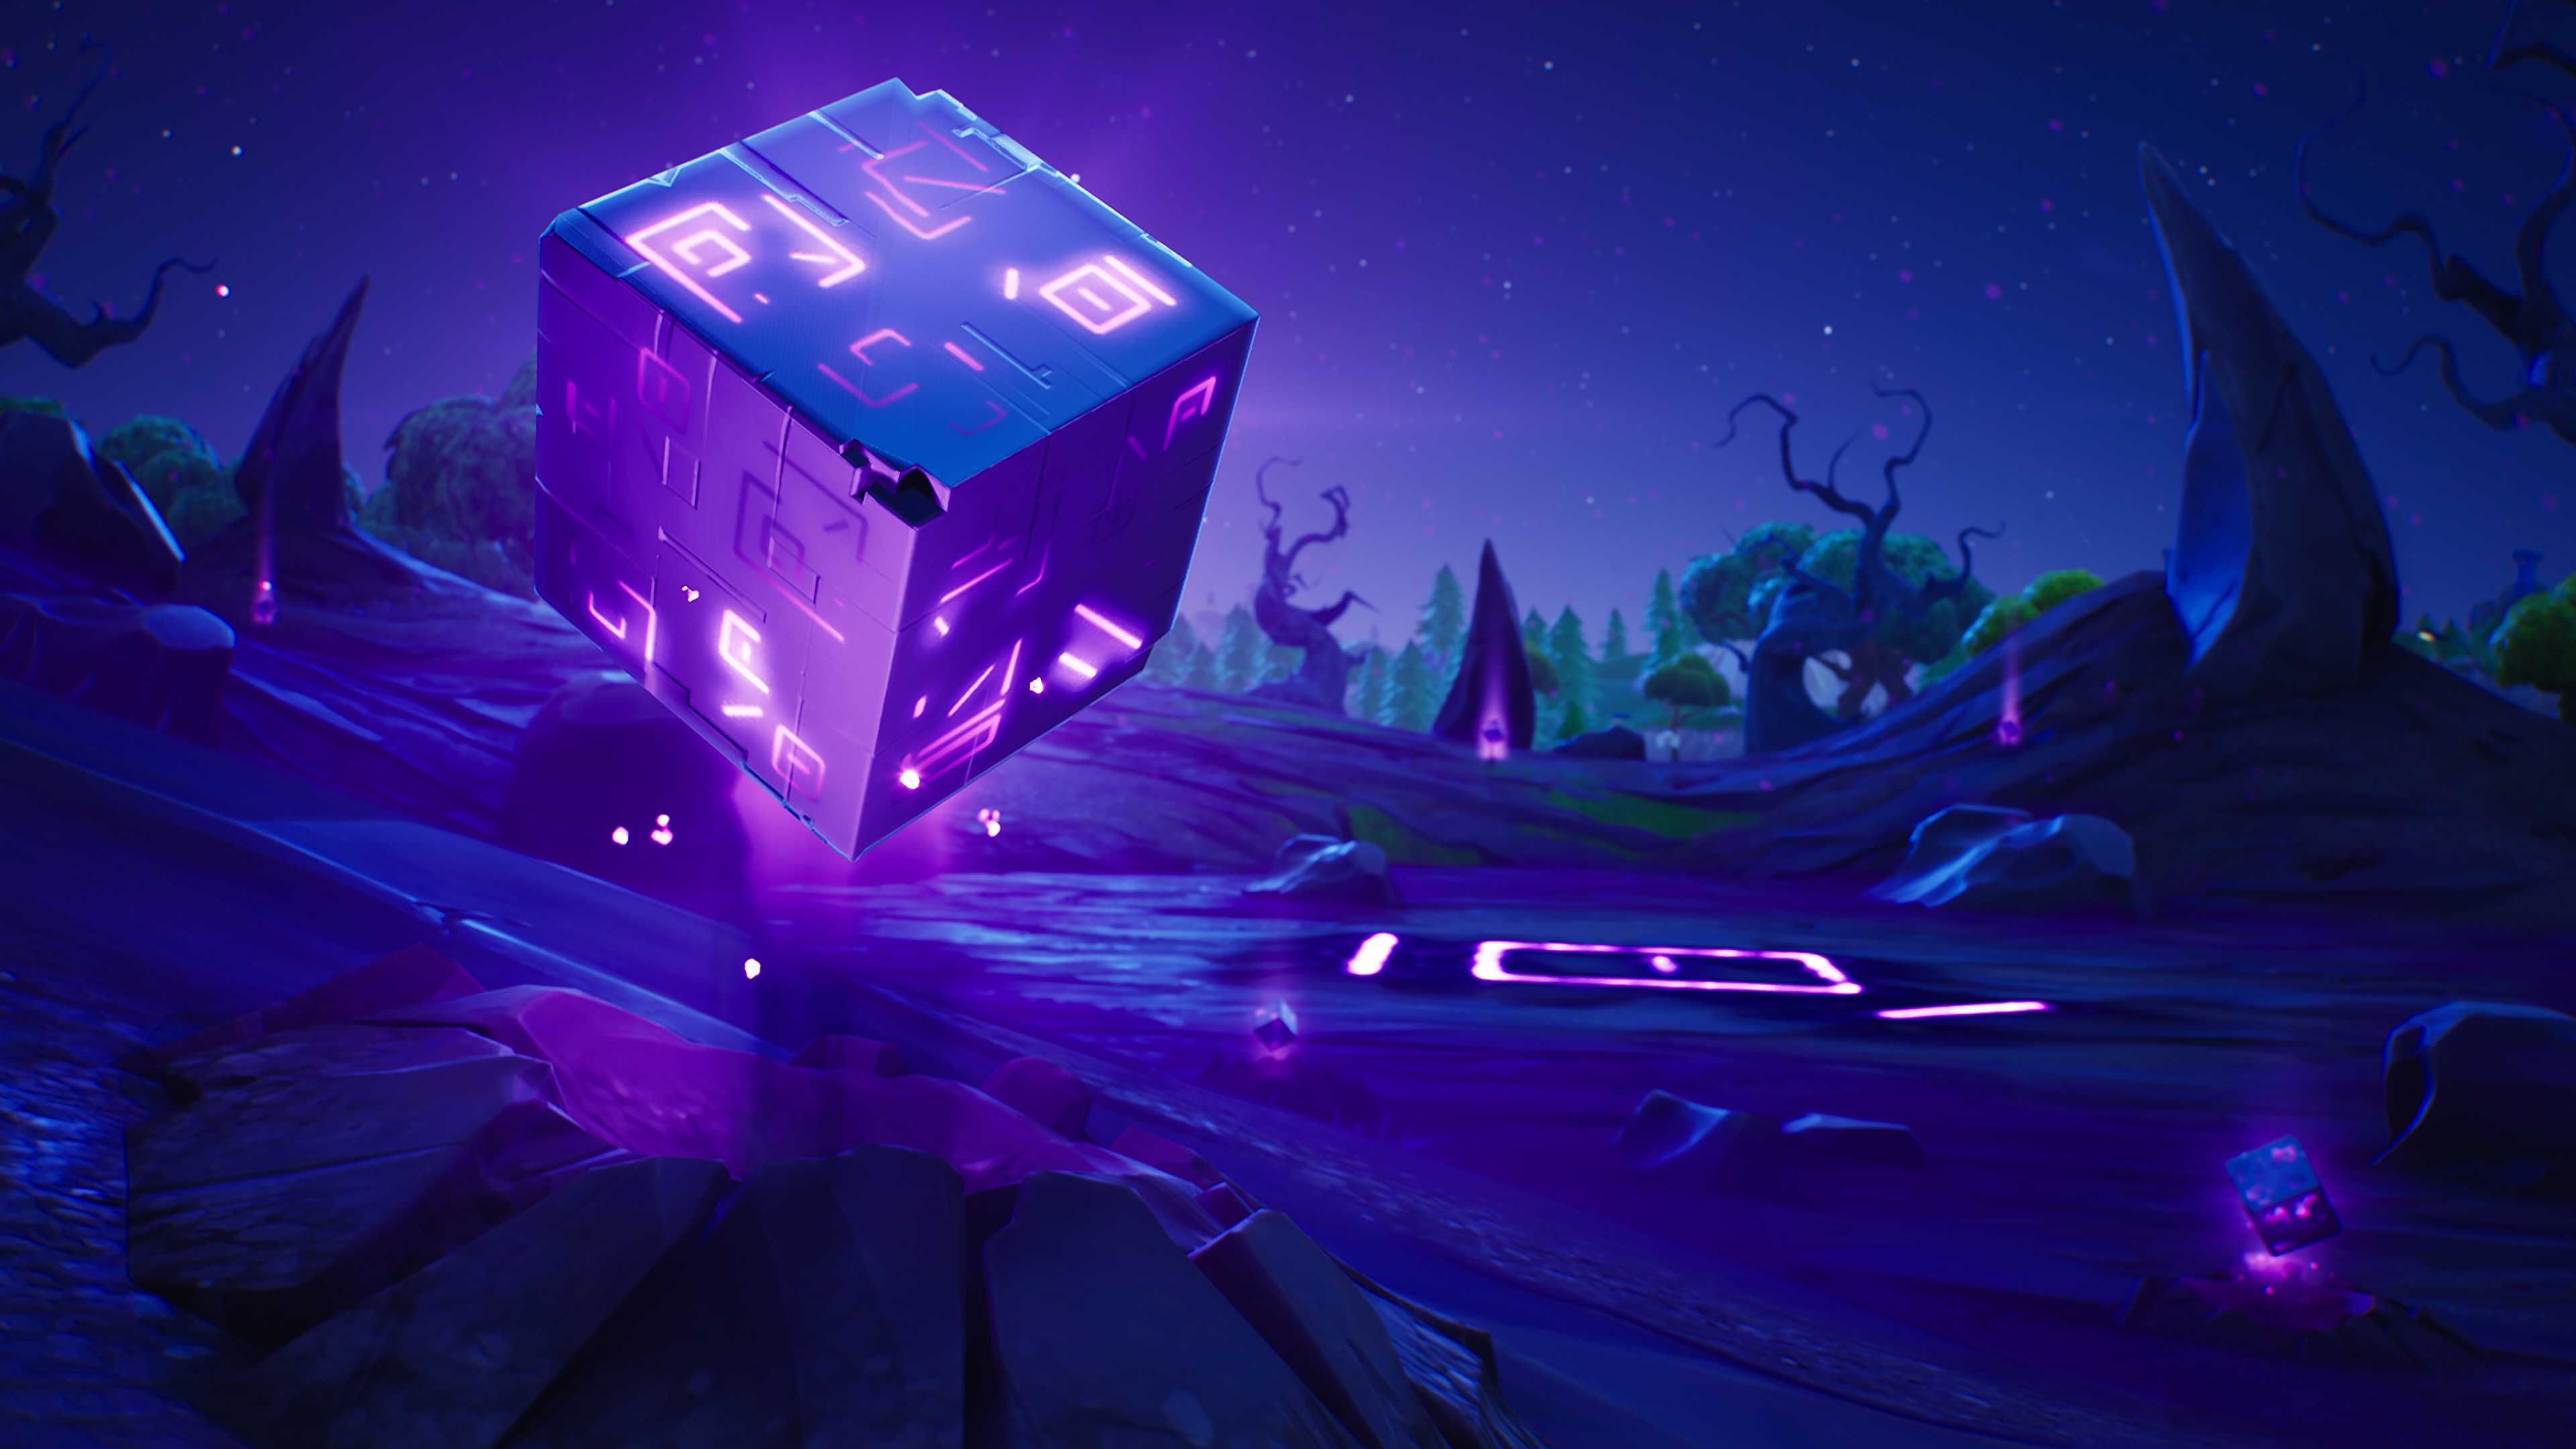 29 Fortnite Cube Wallpapers On Wallpapersafari Free download latest collection of fortnite wallpapers and backgrounds. fortnite cube wallpapers on wallpapersafari